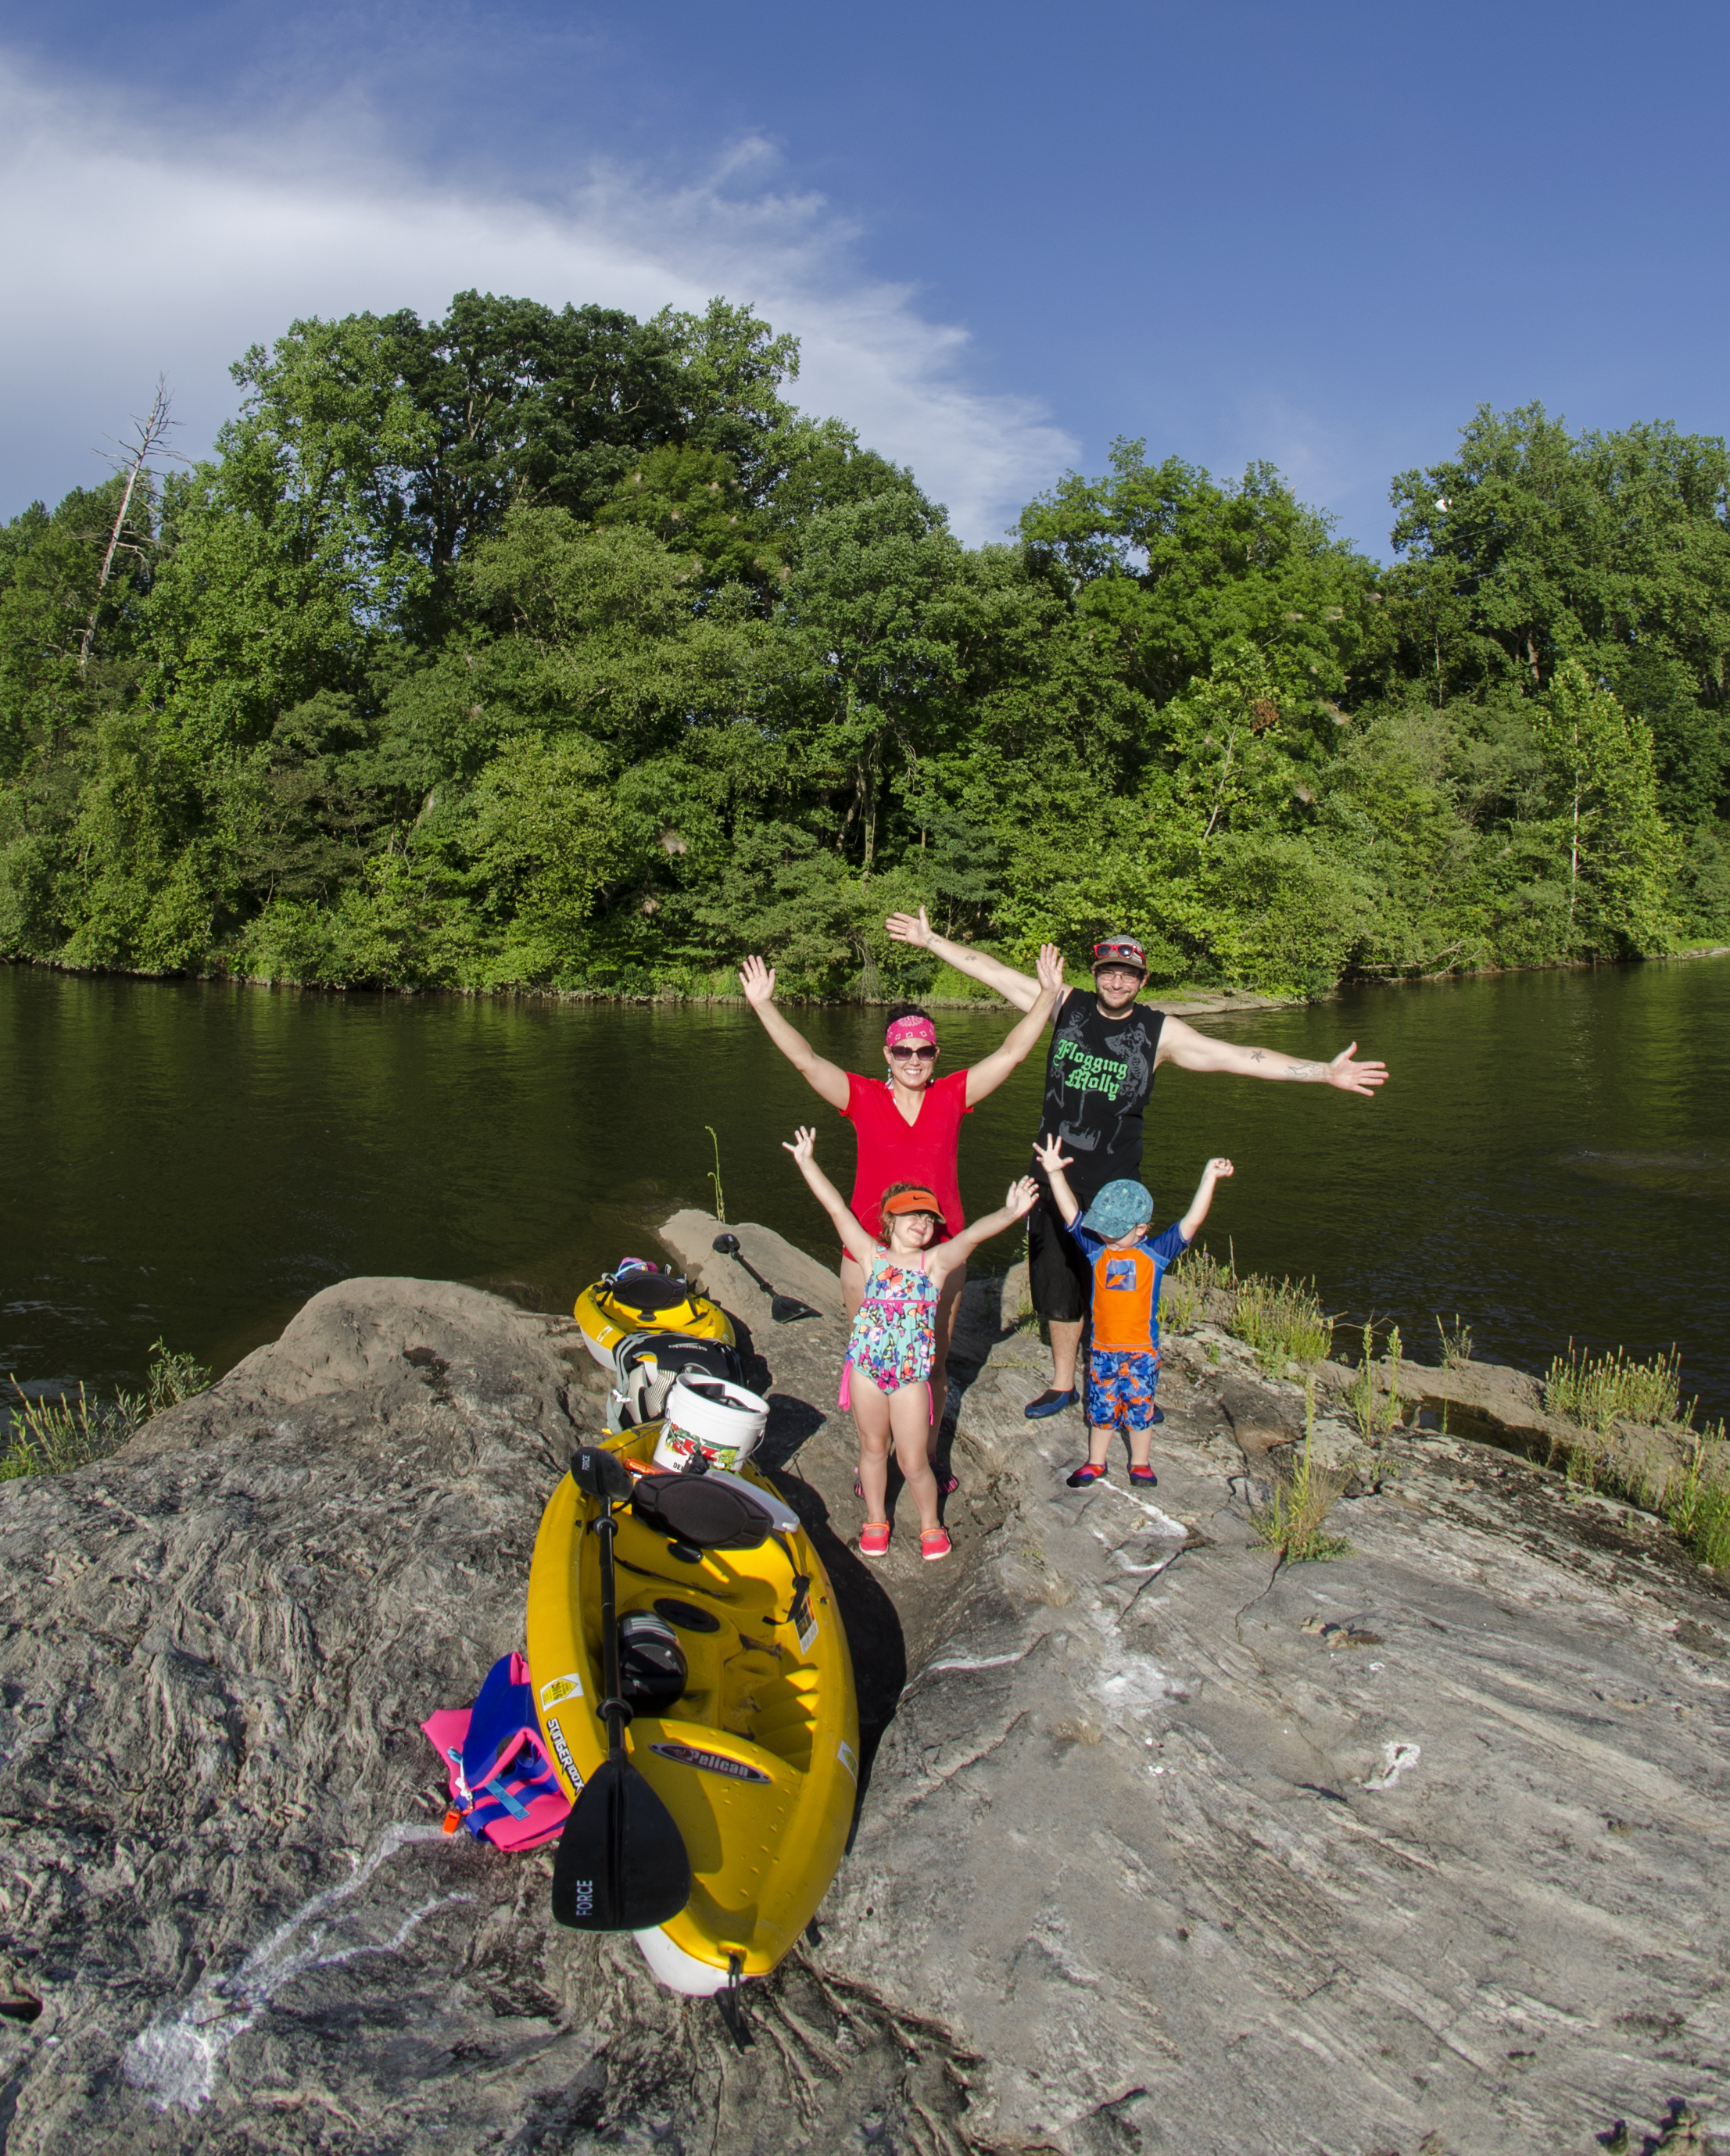 Dochter Family Photo Op while capturing 360 Panos along the Susquehanna River.